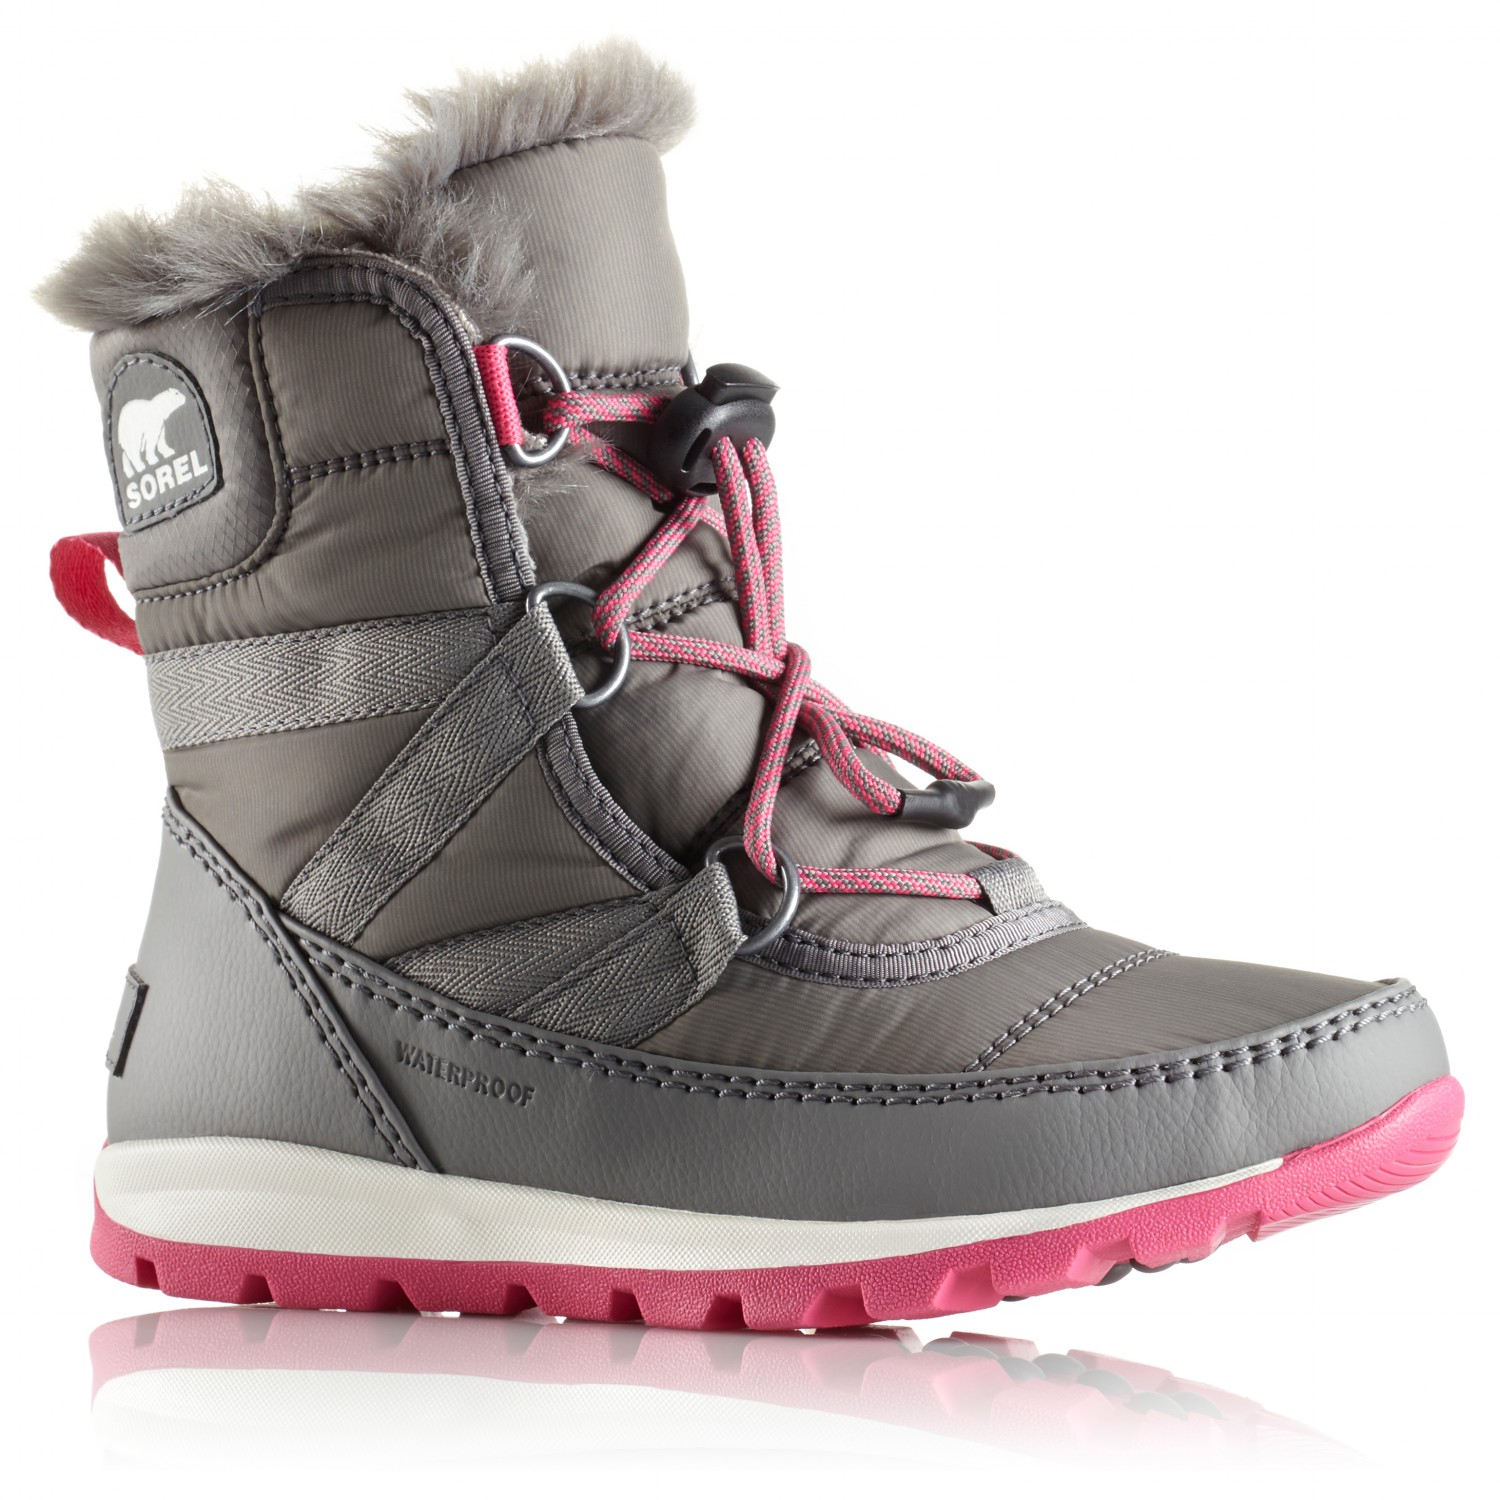 b1d1534a84 Sorel Youth Whitney Short Lace - Winter Boots Kids | Free UK ...